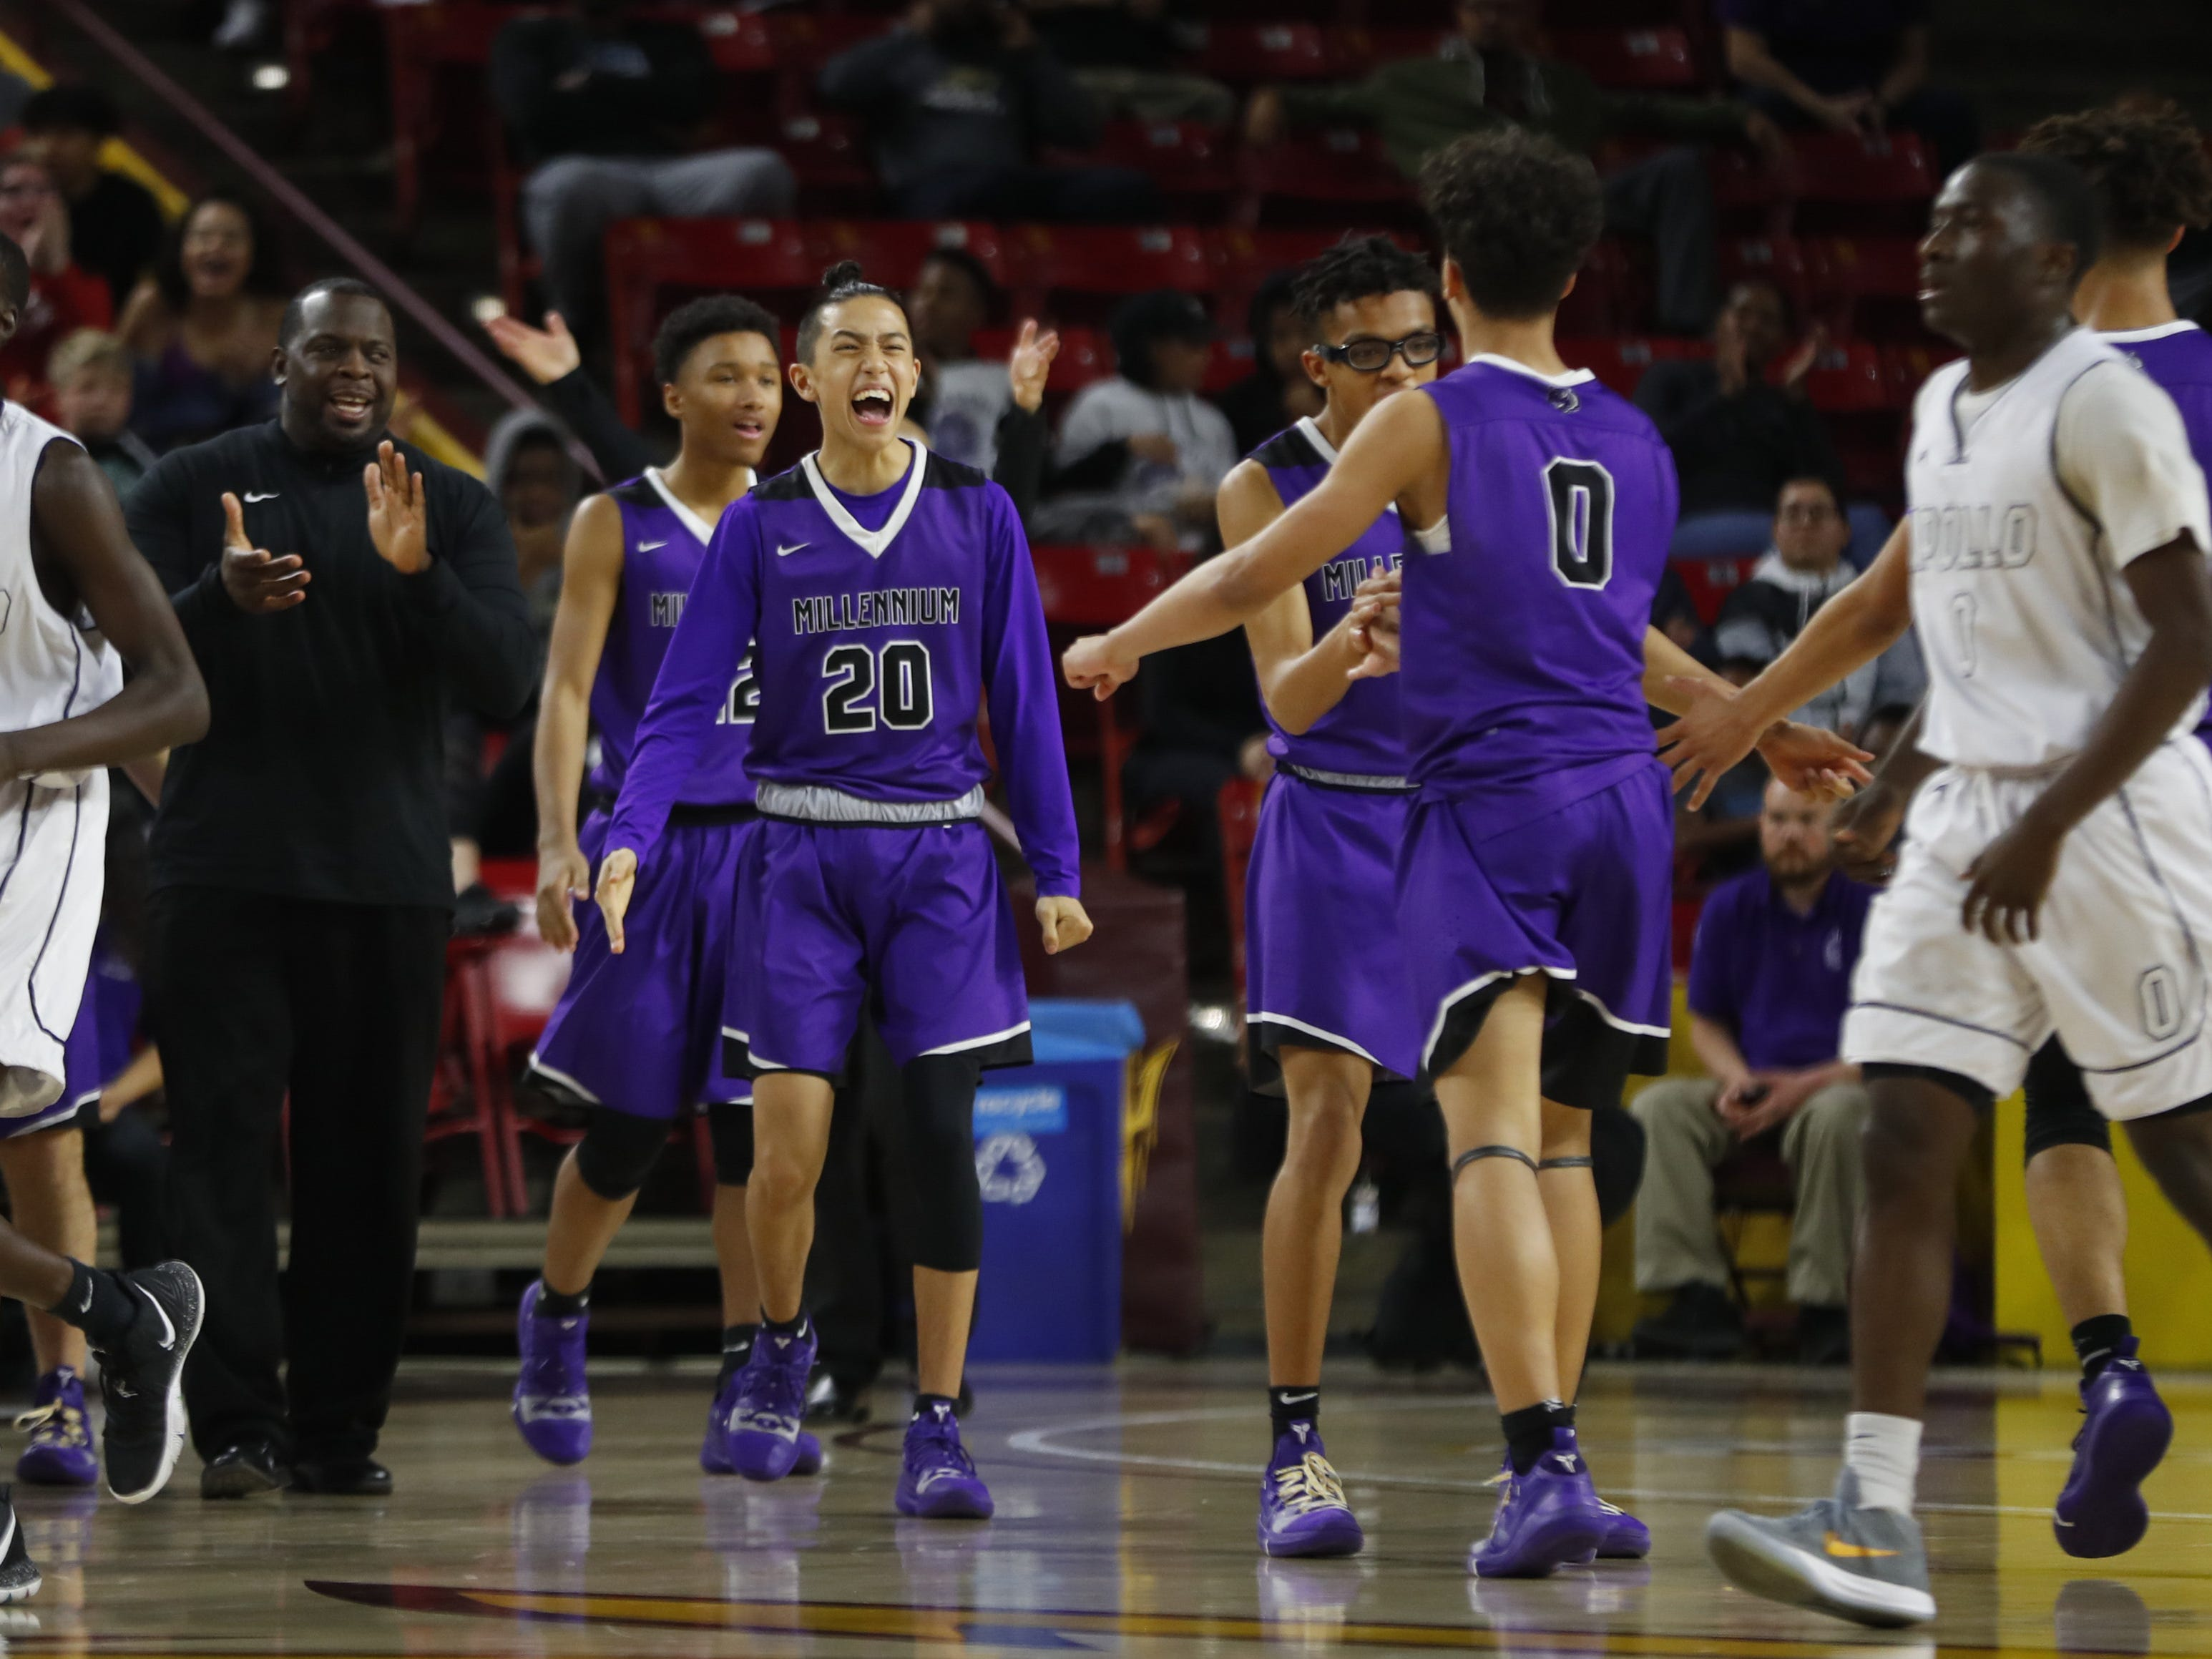 Millennium's Donovan Castro (20) comes onto the court to celebrate with Justus Jackson (0) after the team forces an Apollo timeout during the 5A boys basketball state semifinal game at Wells Fargo Arena in Tempe, Ariz. on February 18, 2019.